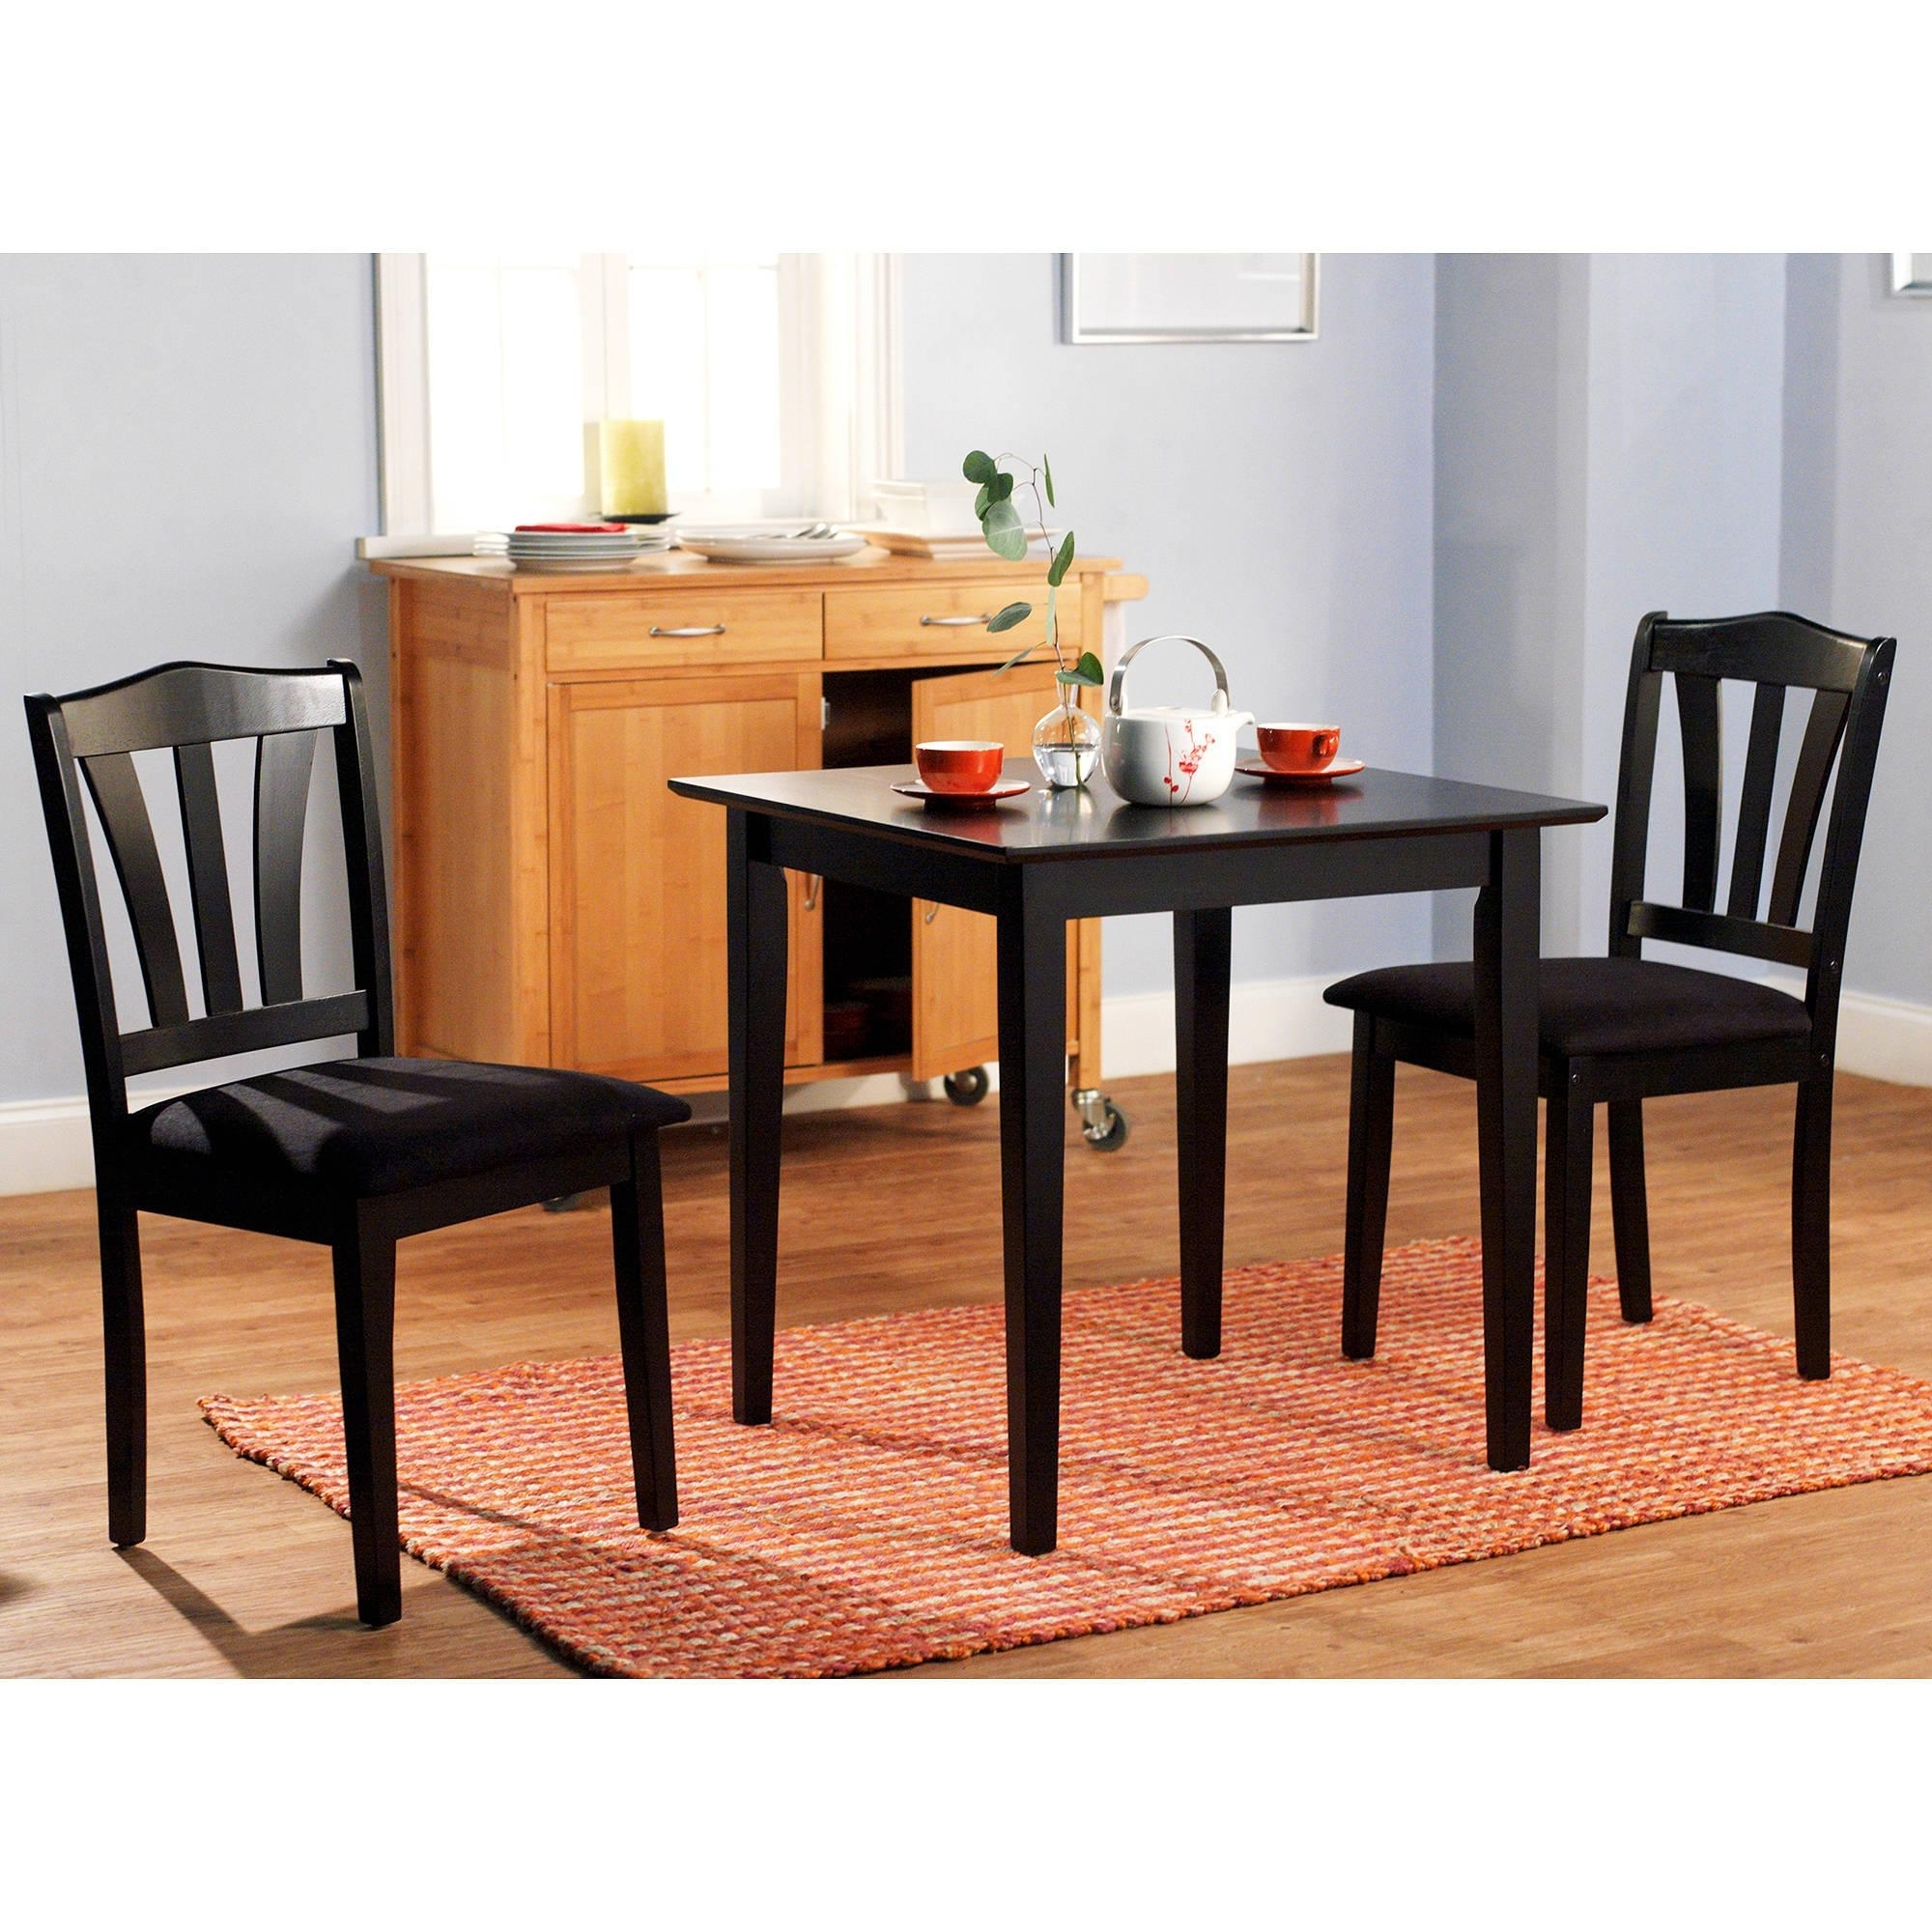 Most Current 3 Piece Dining Set Table 2 Chairs Kitchen Room Wood Furniture With Kitchen Dining Sets (View 19 of 25)